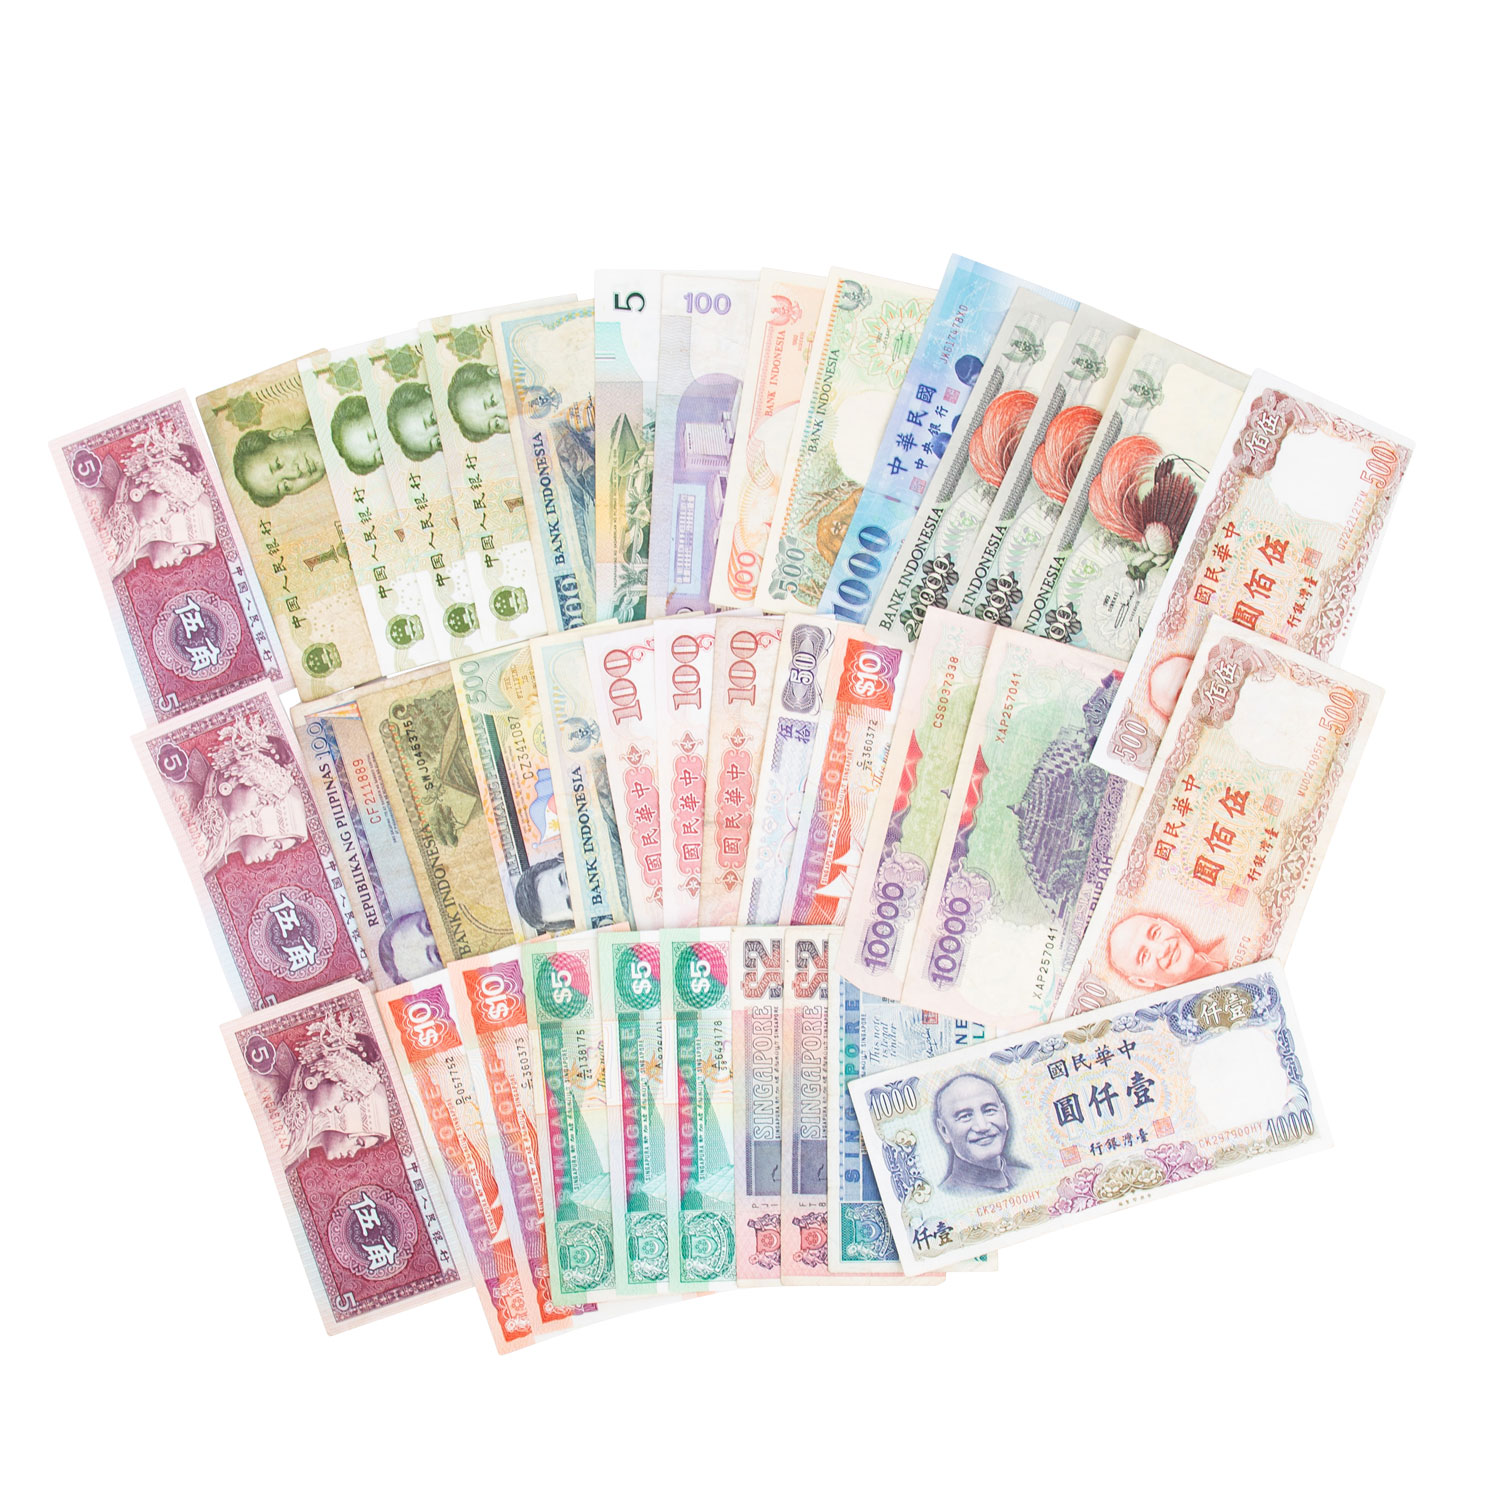 Lot 700 - Banknoten 20. Jh. Asien mit u.a. China,Taiwan, Philippinen, Indonesien, Singapur. 38 Stück,